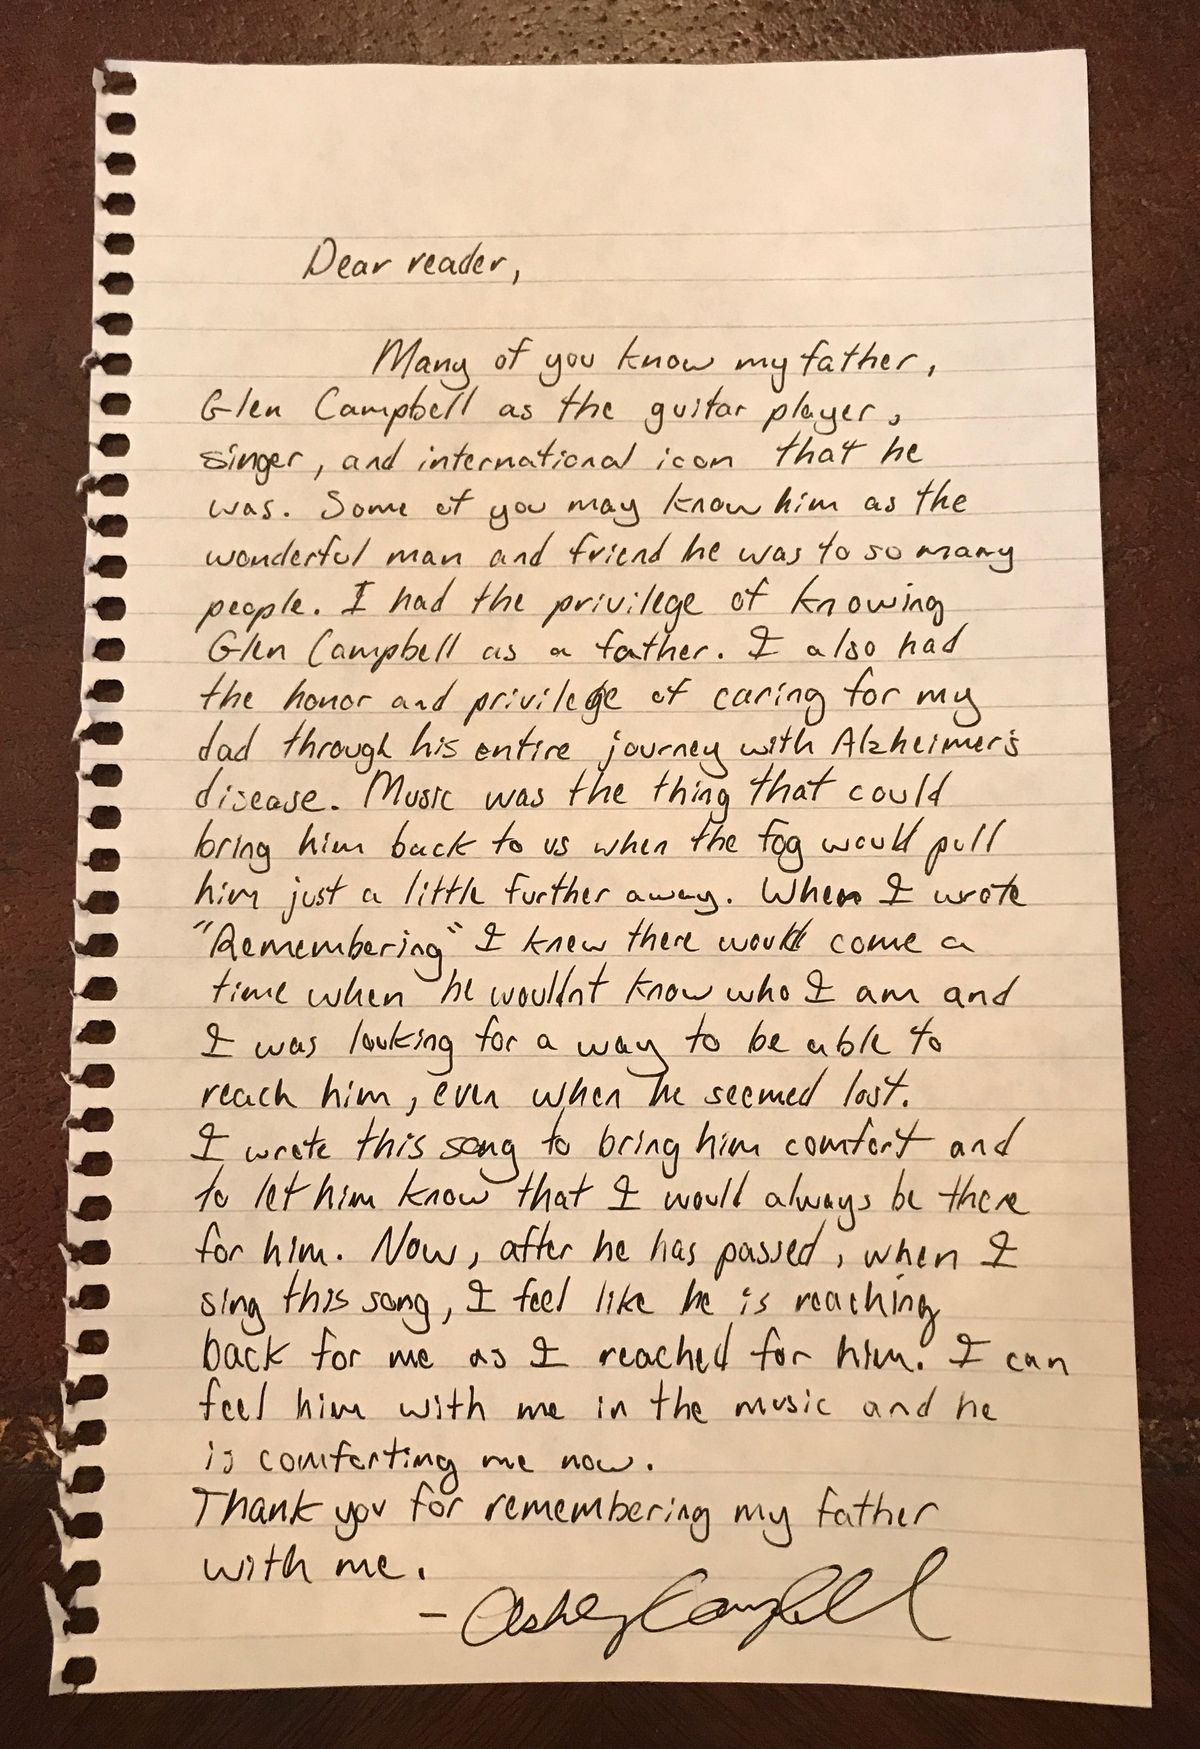 Ashley Campbell letter